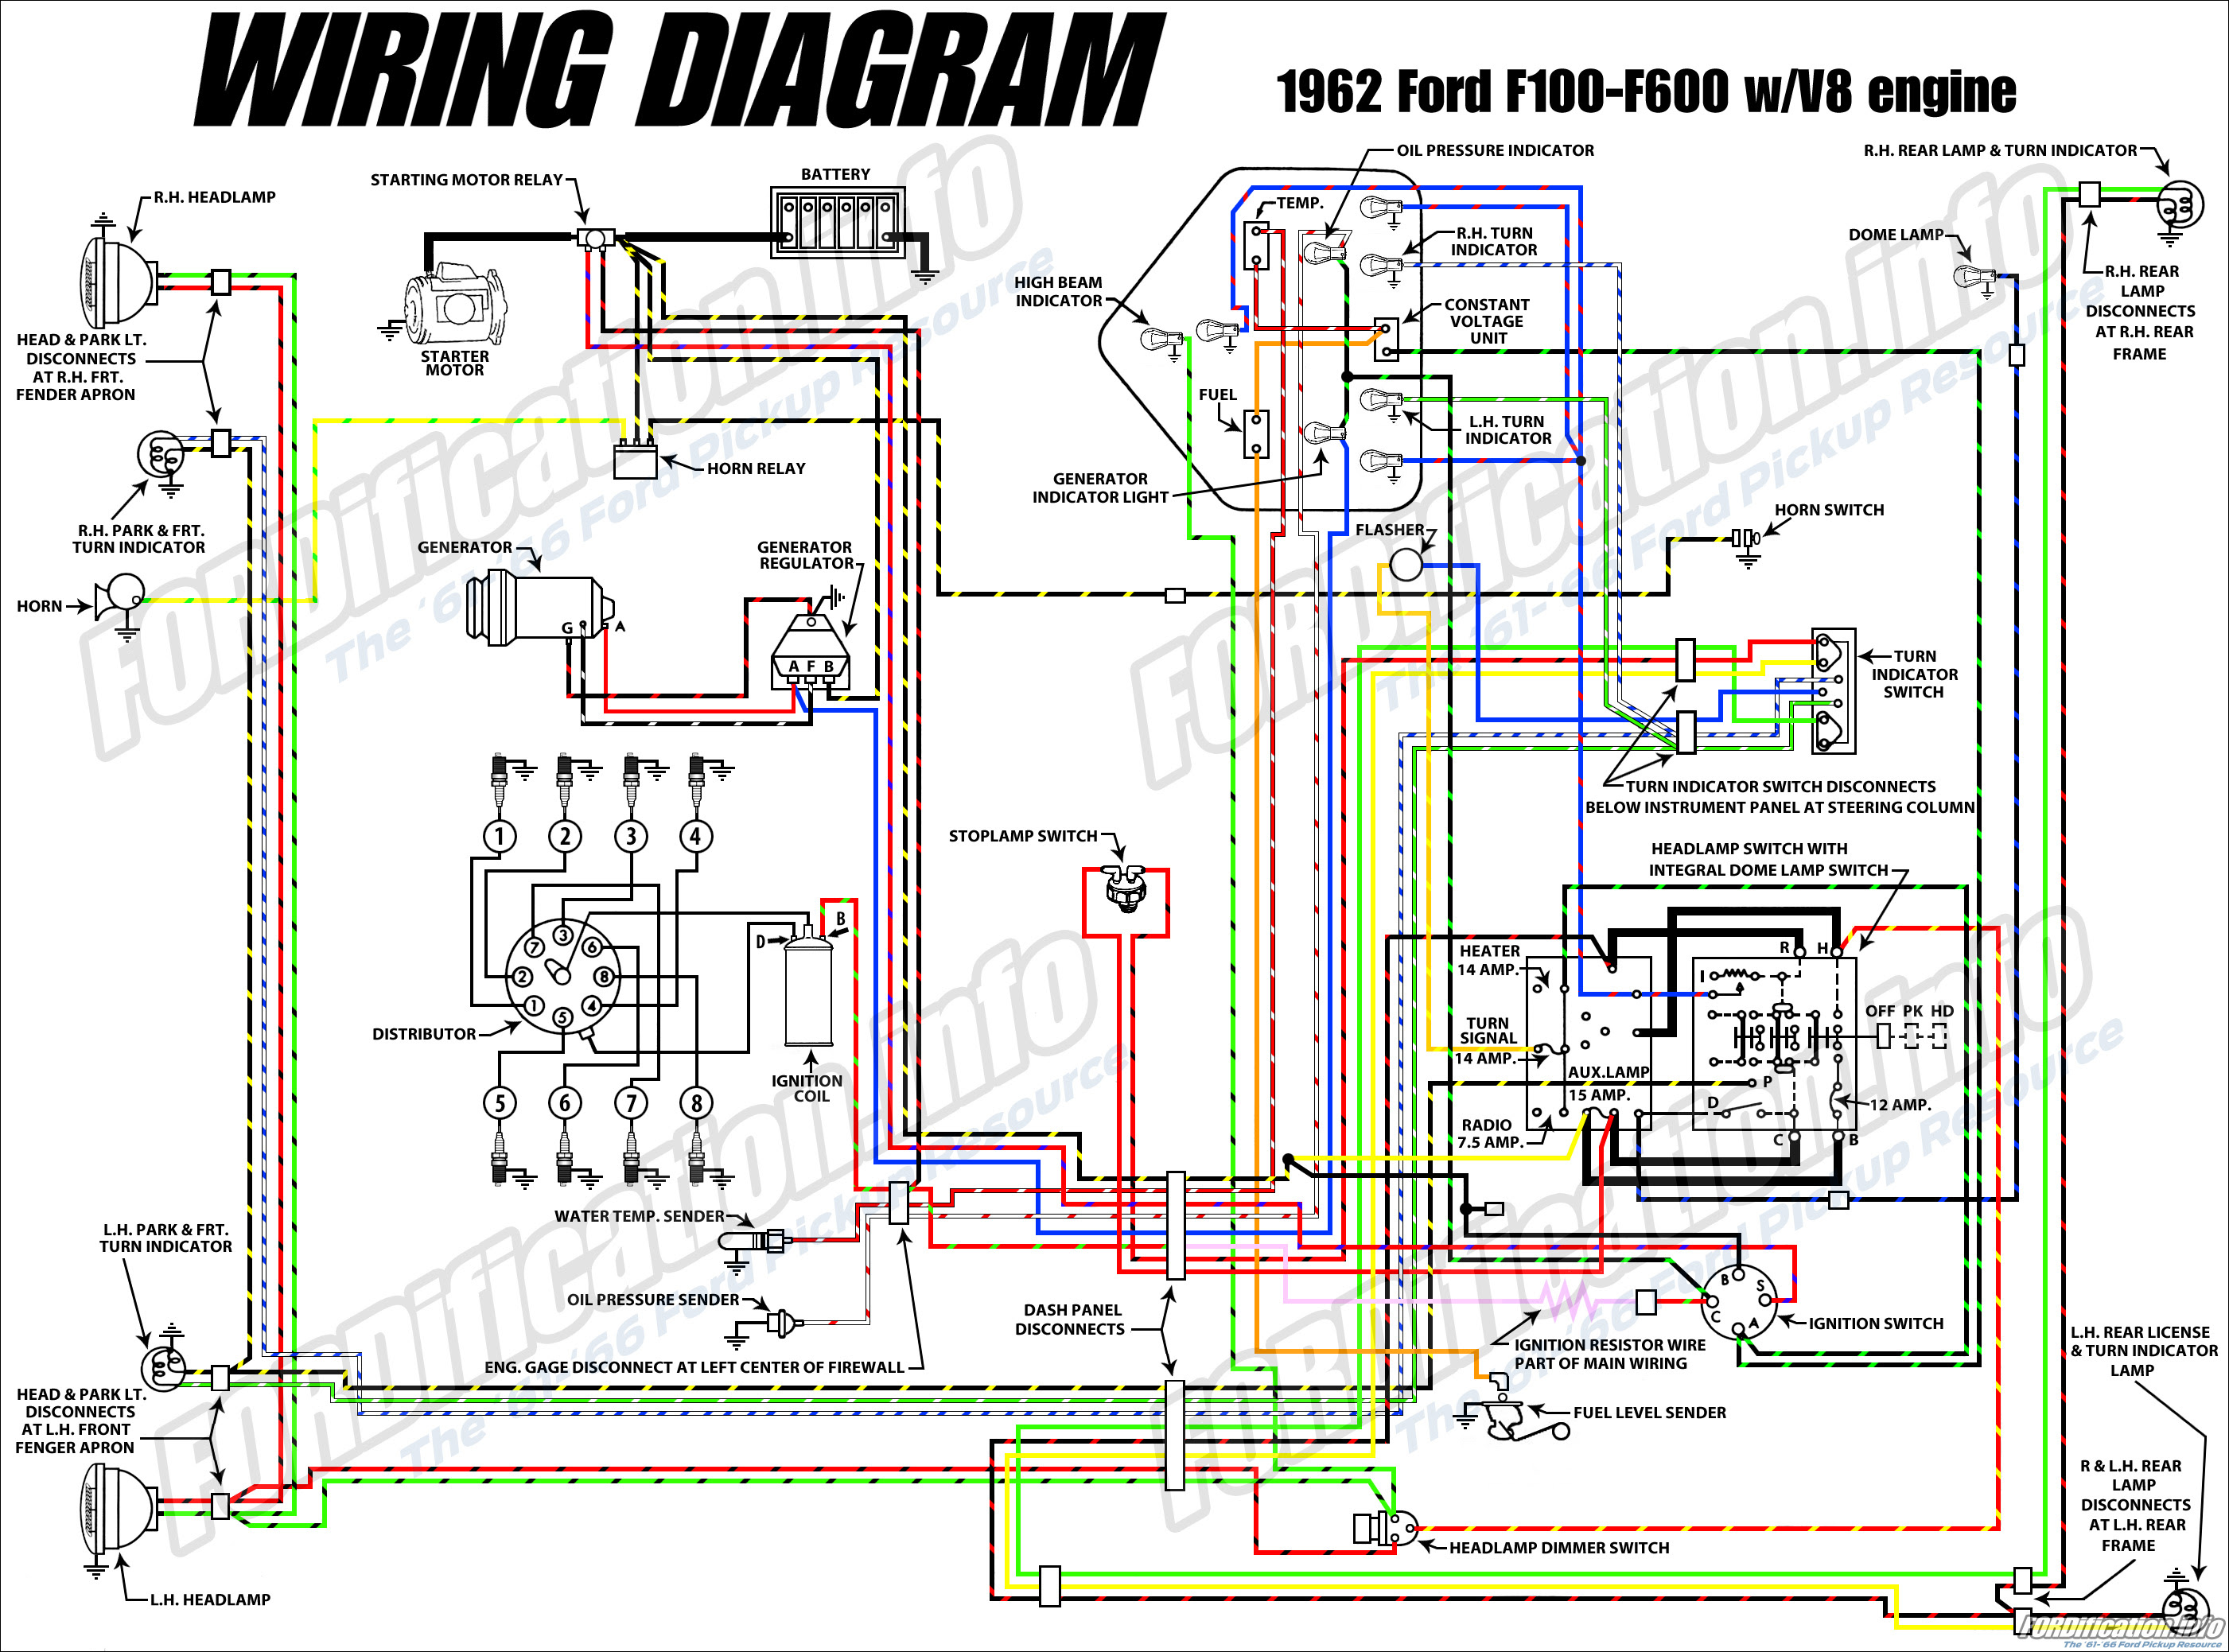 1969 Ford F100 Voltage Gauge Wiring Diagram Typical 7 Wire Trailer Wiring Diagram Cheerokee Kankubuktikan Jeanjaures37 Fr